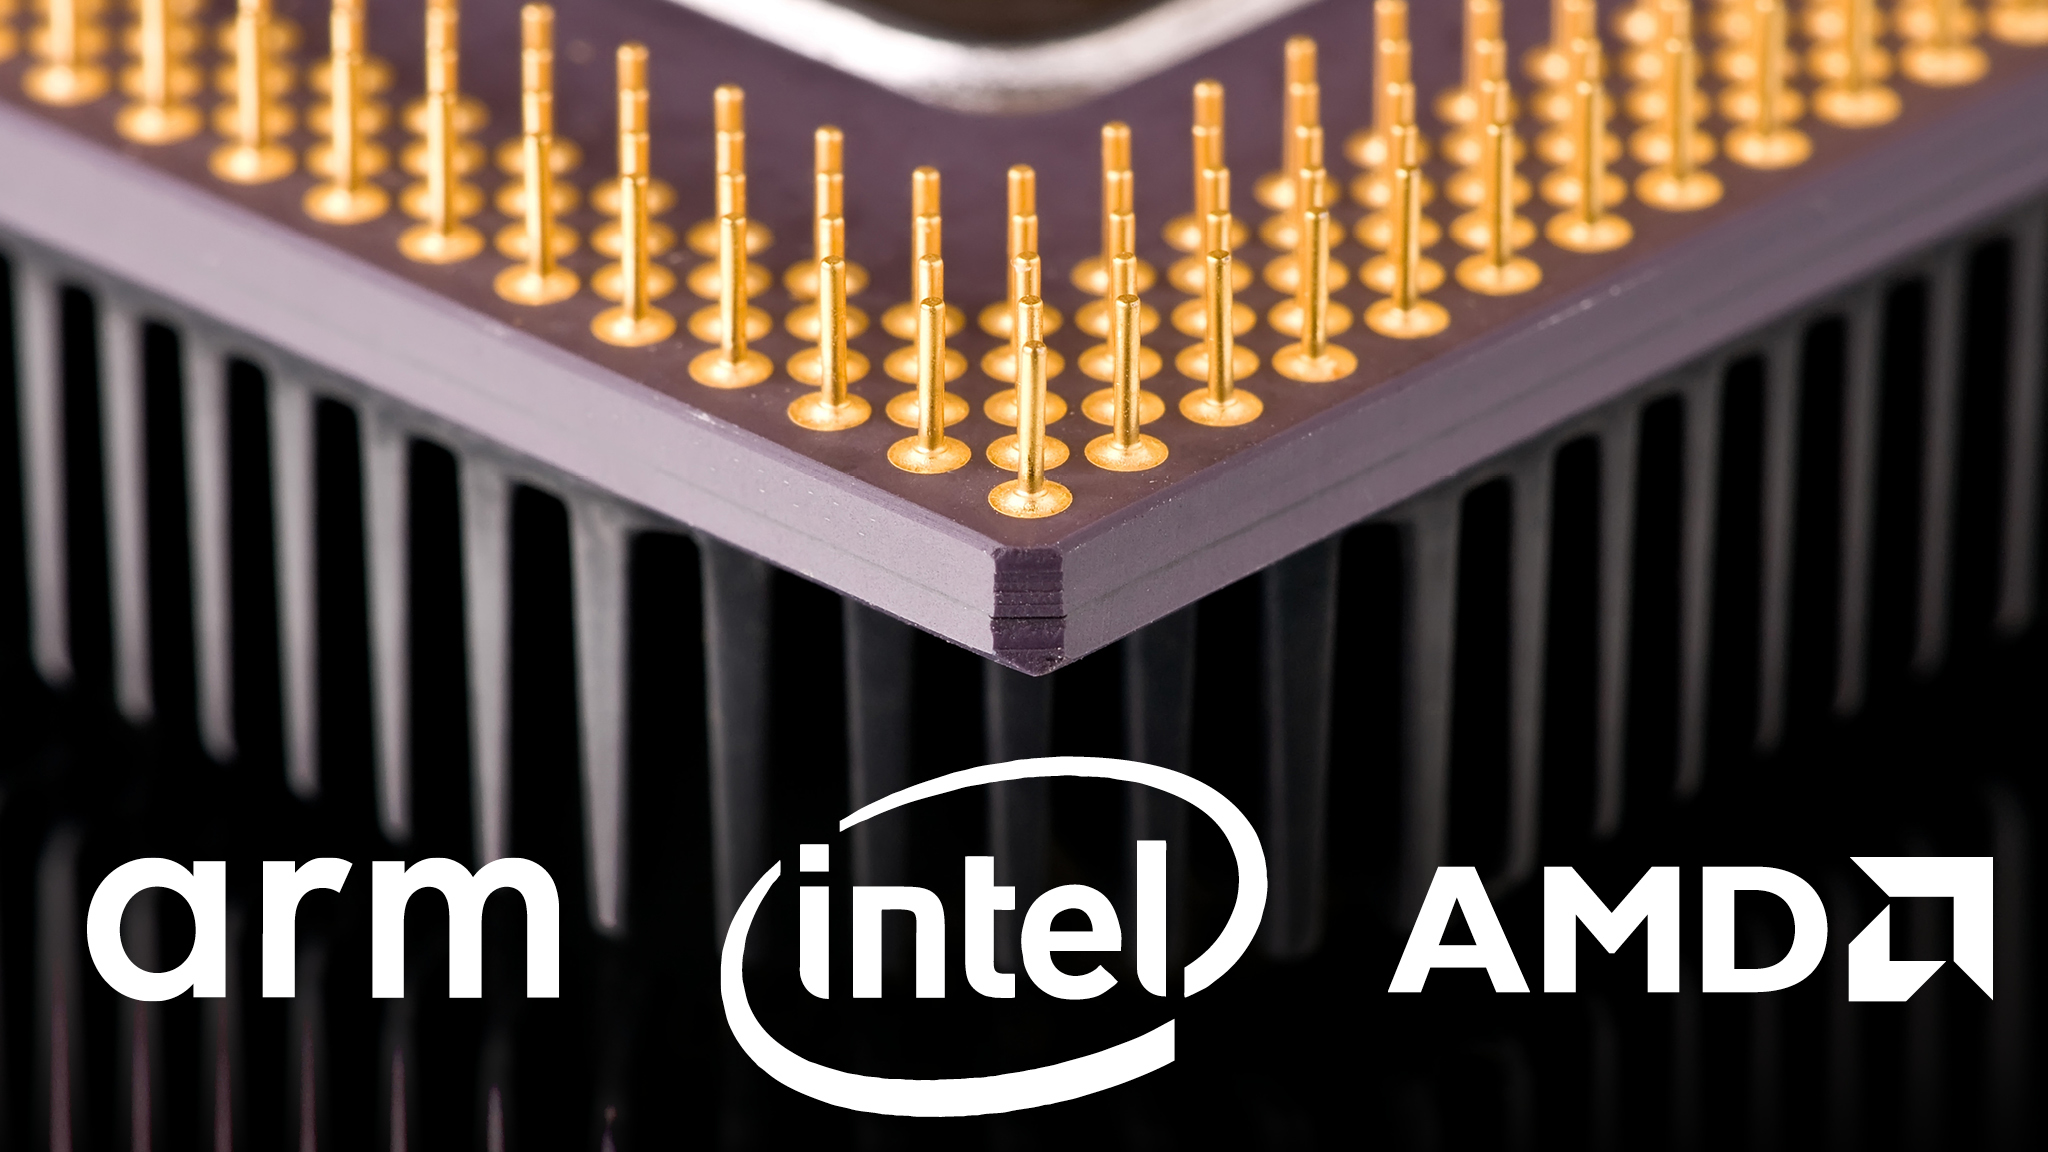 Security experts issue dire warning on chip flaw